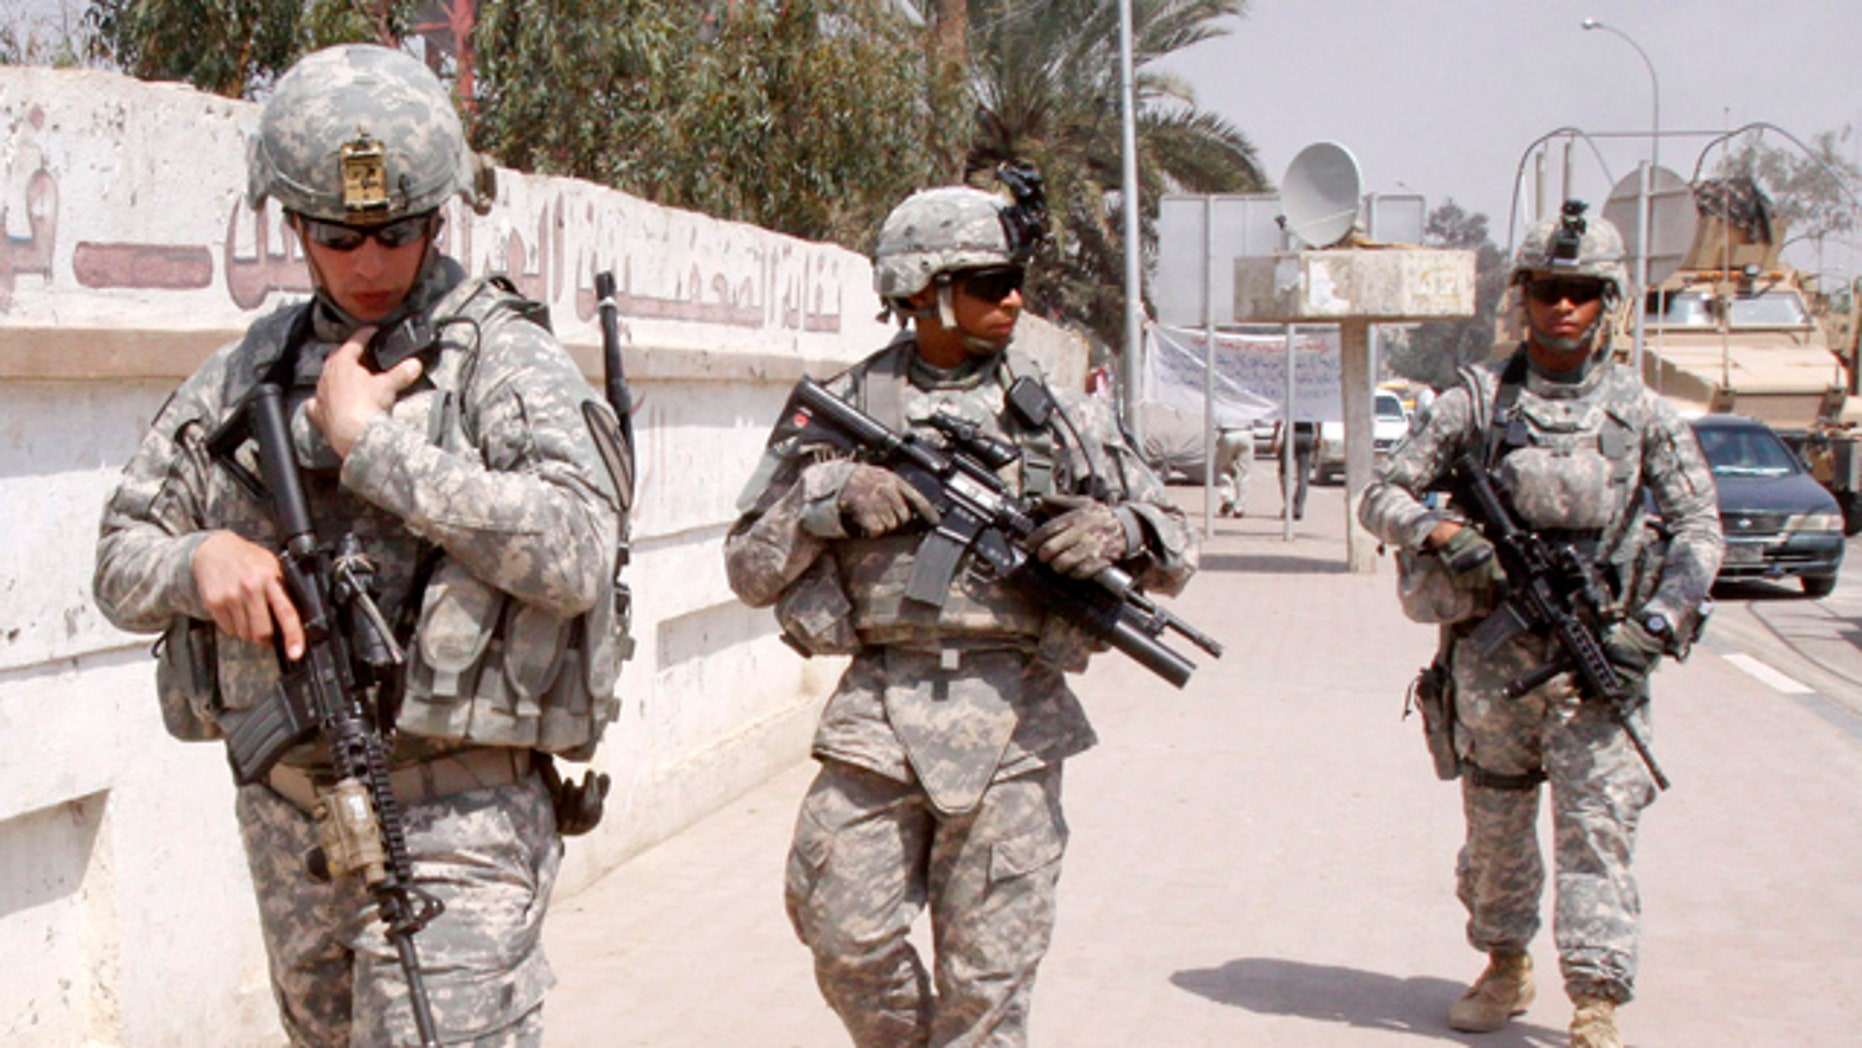 March 23, 2011: U.S. troops stand guard outside a local journalists' union office in Basra, Iraq.